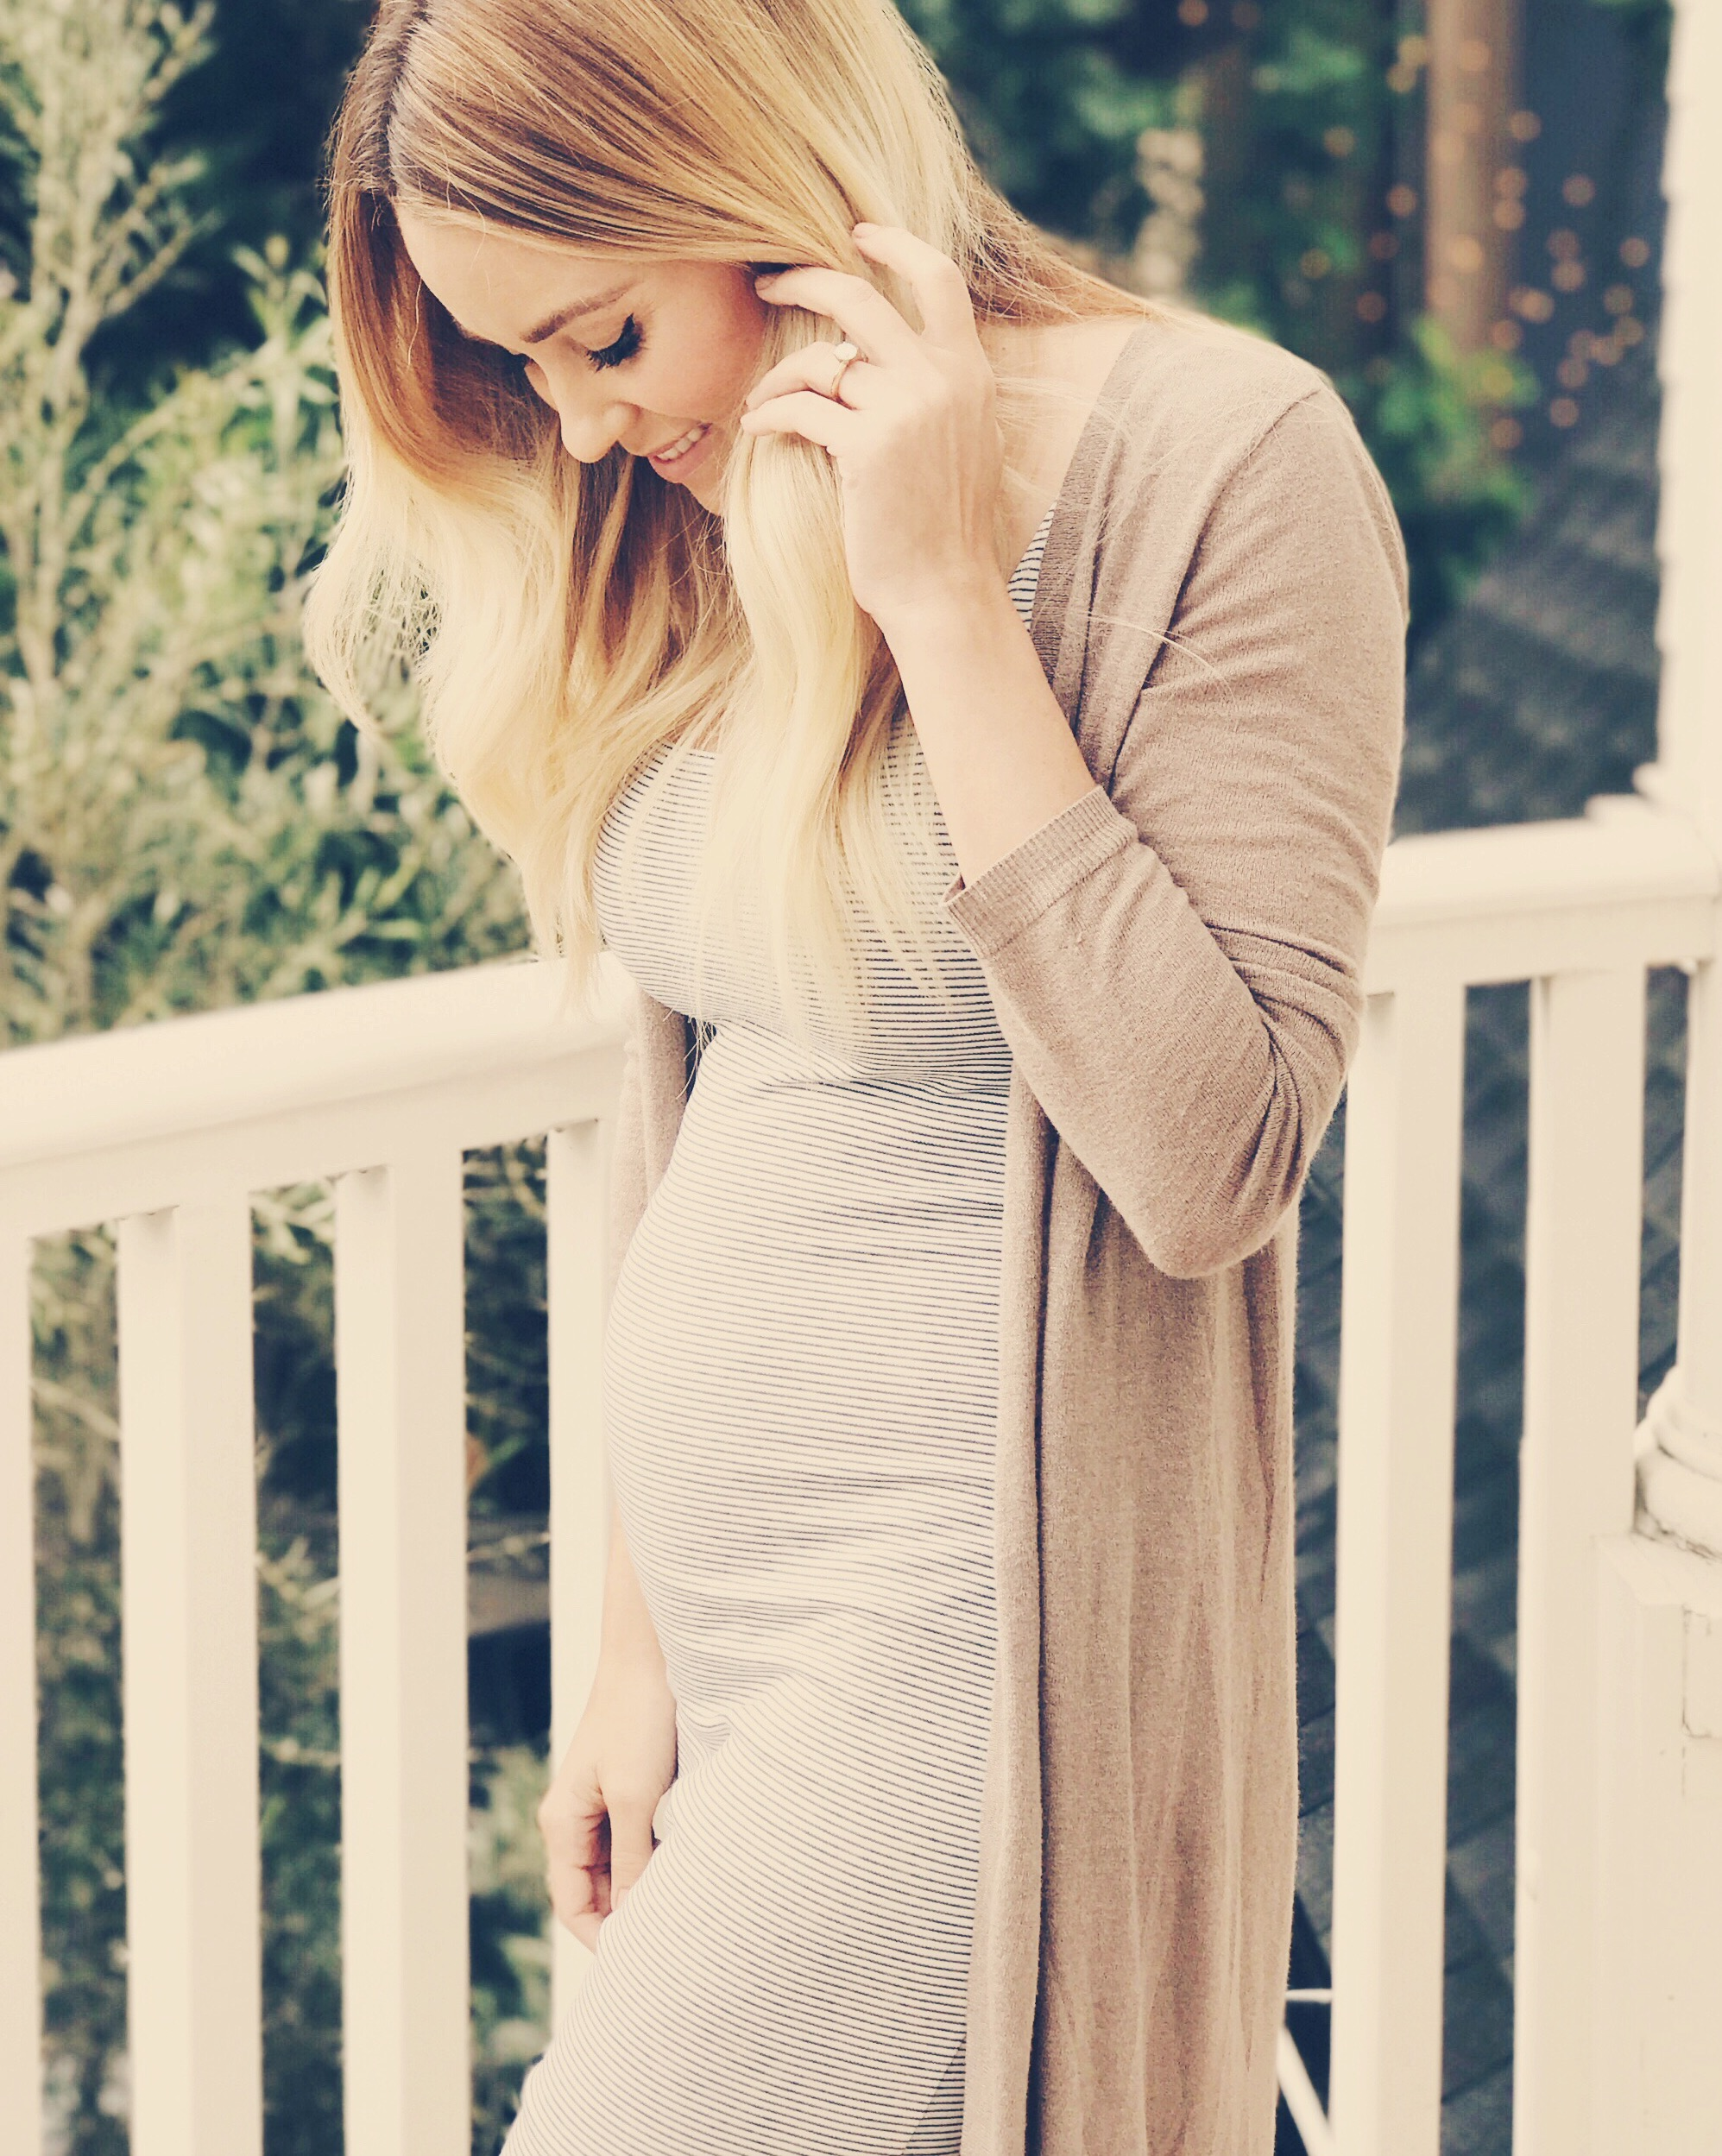 Lauren Conrad Releases First Baby Bump Photo! | LaurenConrad.com